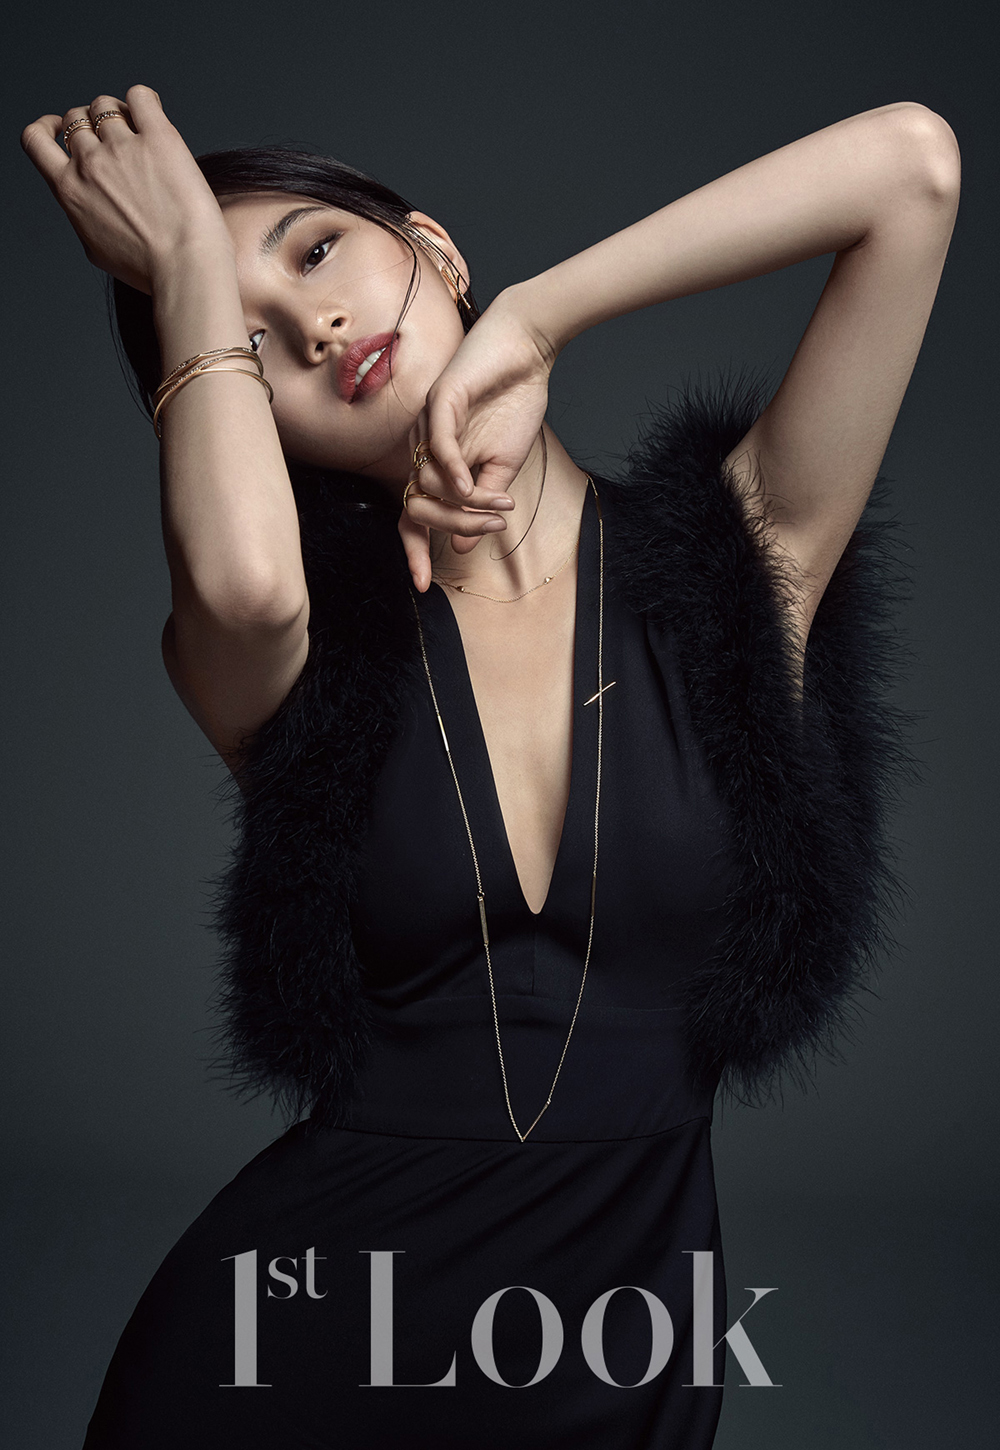 Suzy Takes Your Breath Away With First Look Magazine